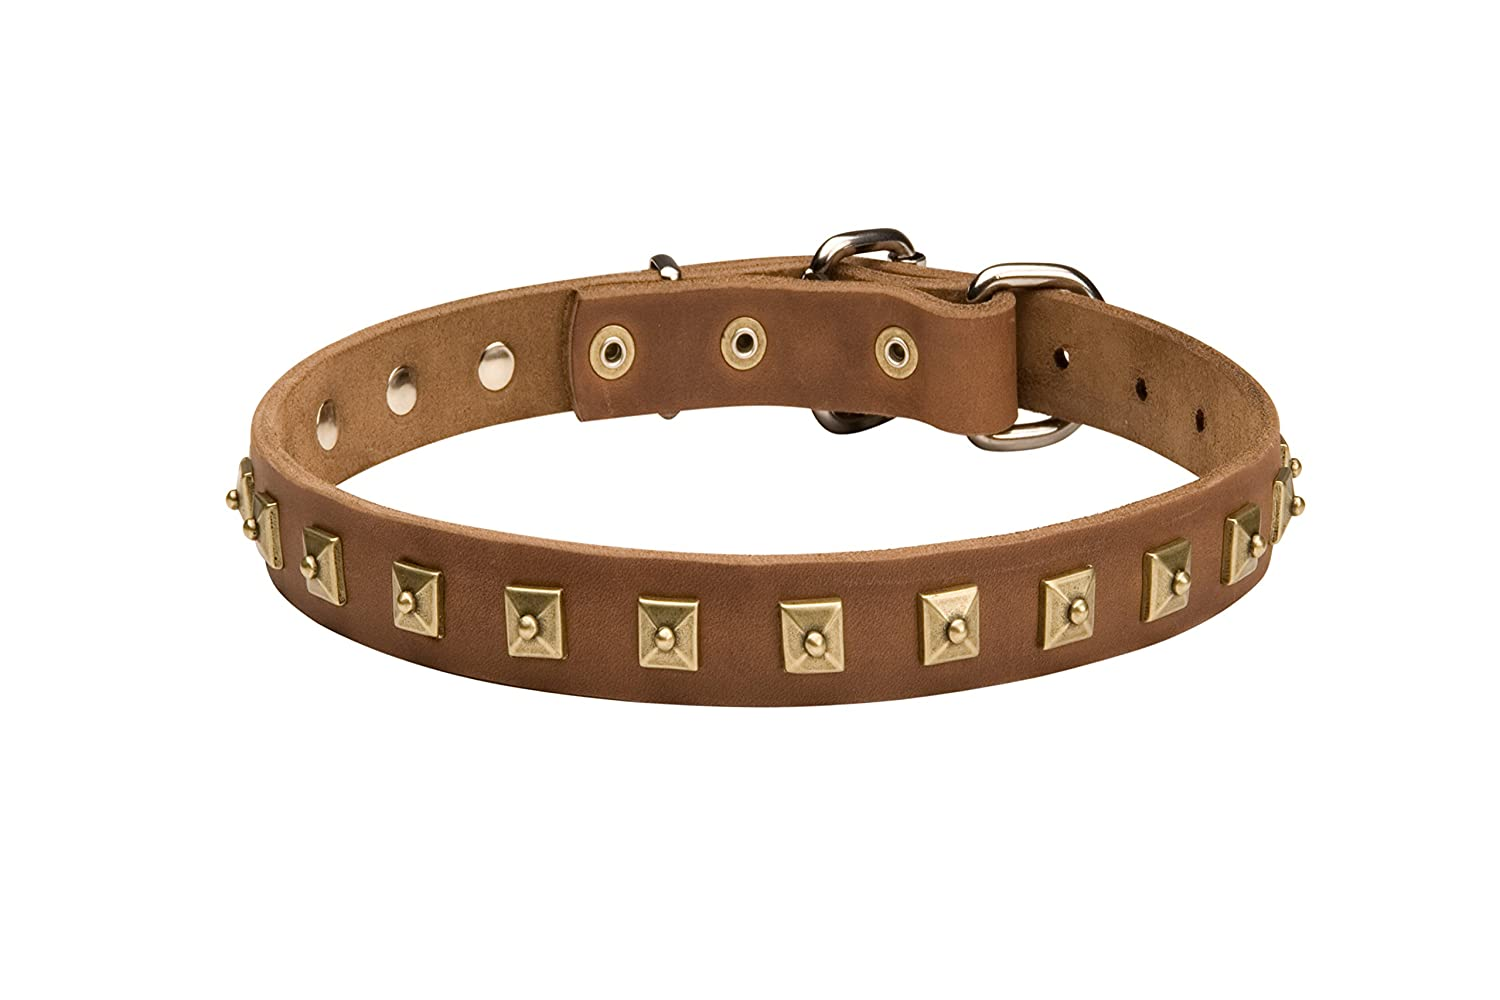 Brown fits for 40 inch dog's neck size Brown fits for 40 inch dog's neck size 40 inch Brown Leather Dog Collar with 1 Row of Dotted Pyramids  Caterpillar Style - 1 inch (25 mm) wide